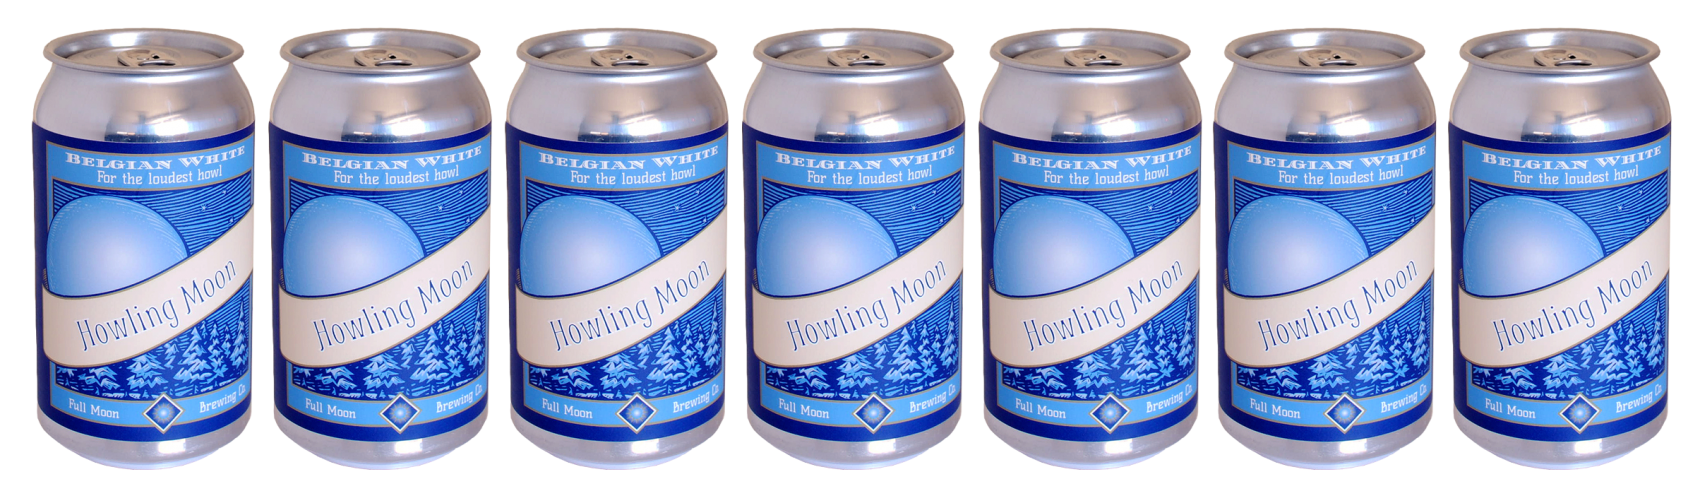 Make custom beer can labels. Fully adhesive and waterproof, they fit beer cans like this 12 oz aluminum can perfectly.